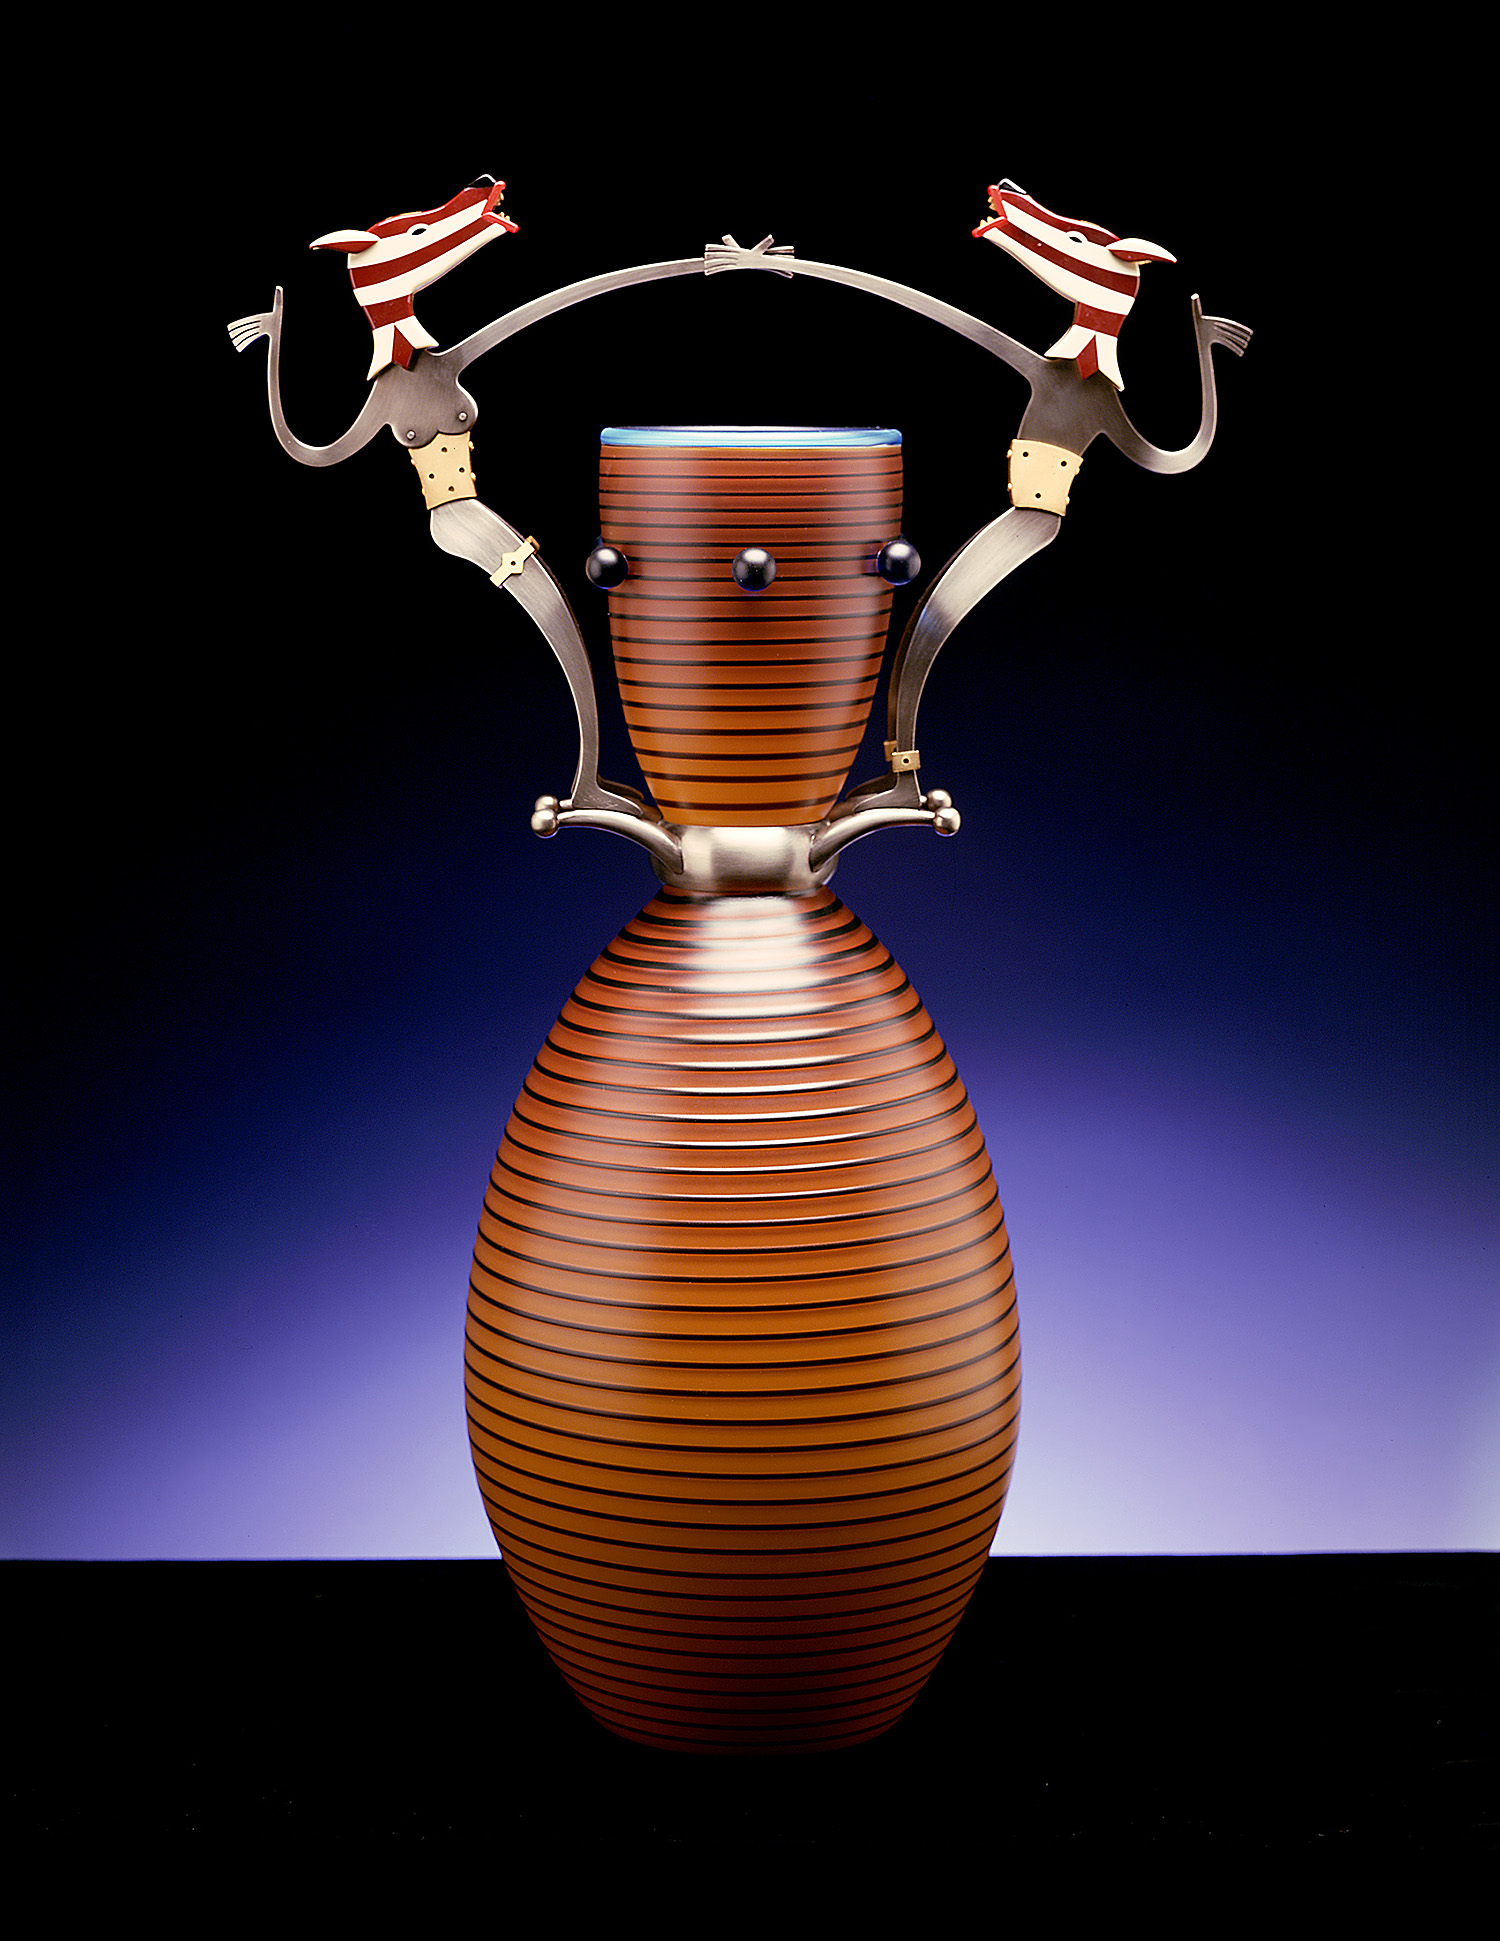 Marvelous Spectacle   2003. Blown glass, nickel and gold-plated bronze, Vitrolite. 27½ x 16½ x 10""